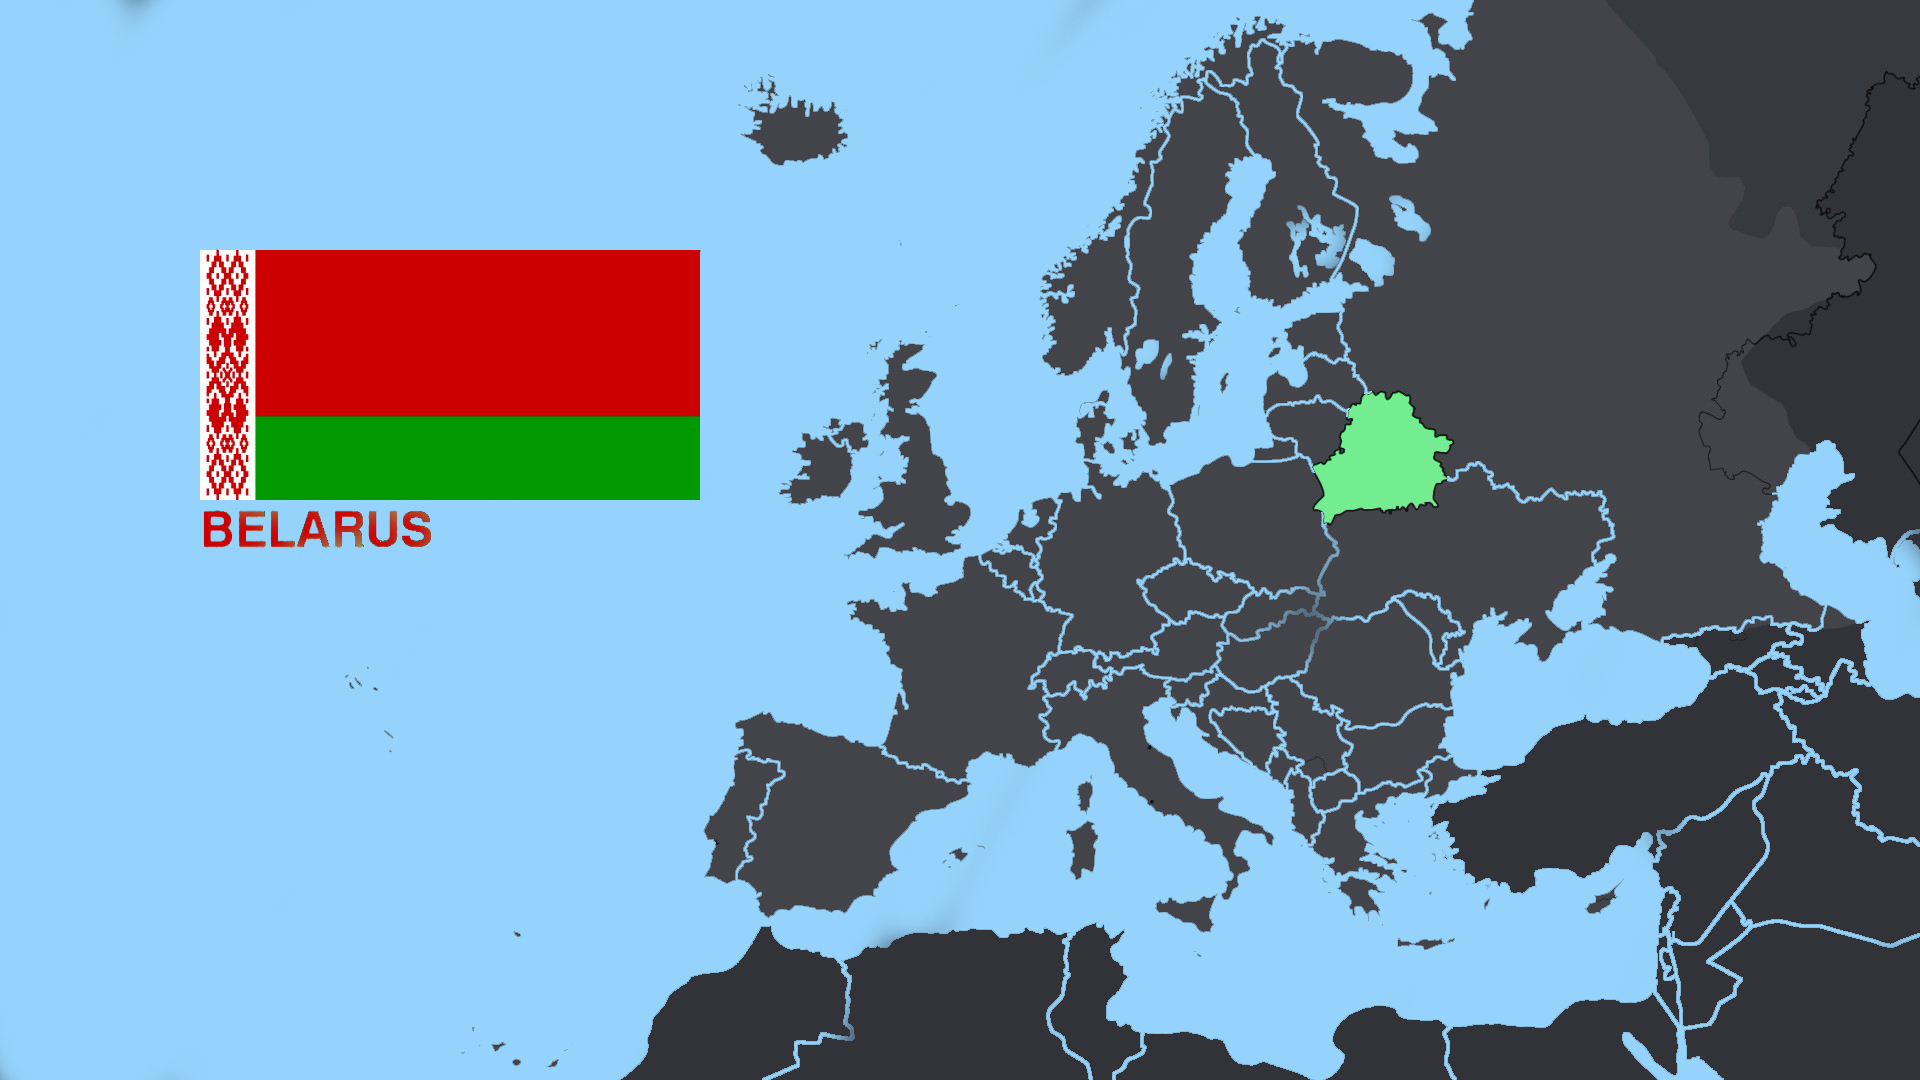 IVF and surrogacy tourism in Europe. Surrogacy in Belarus